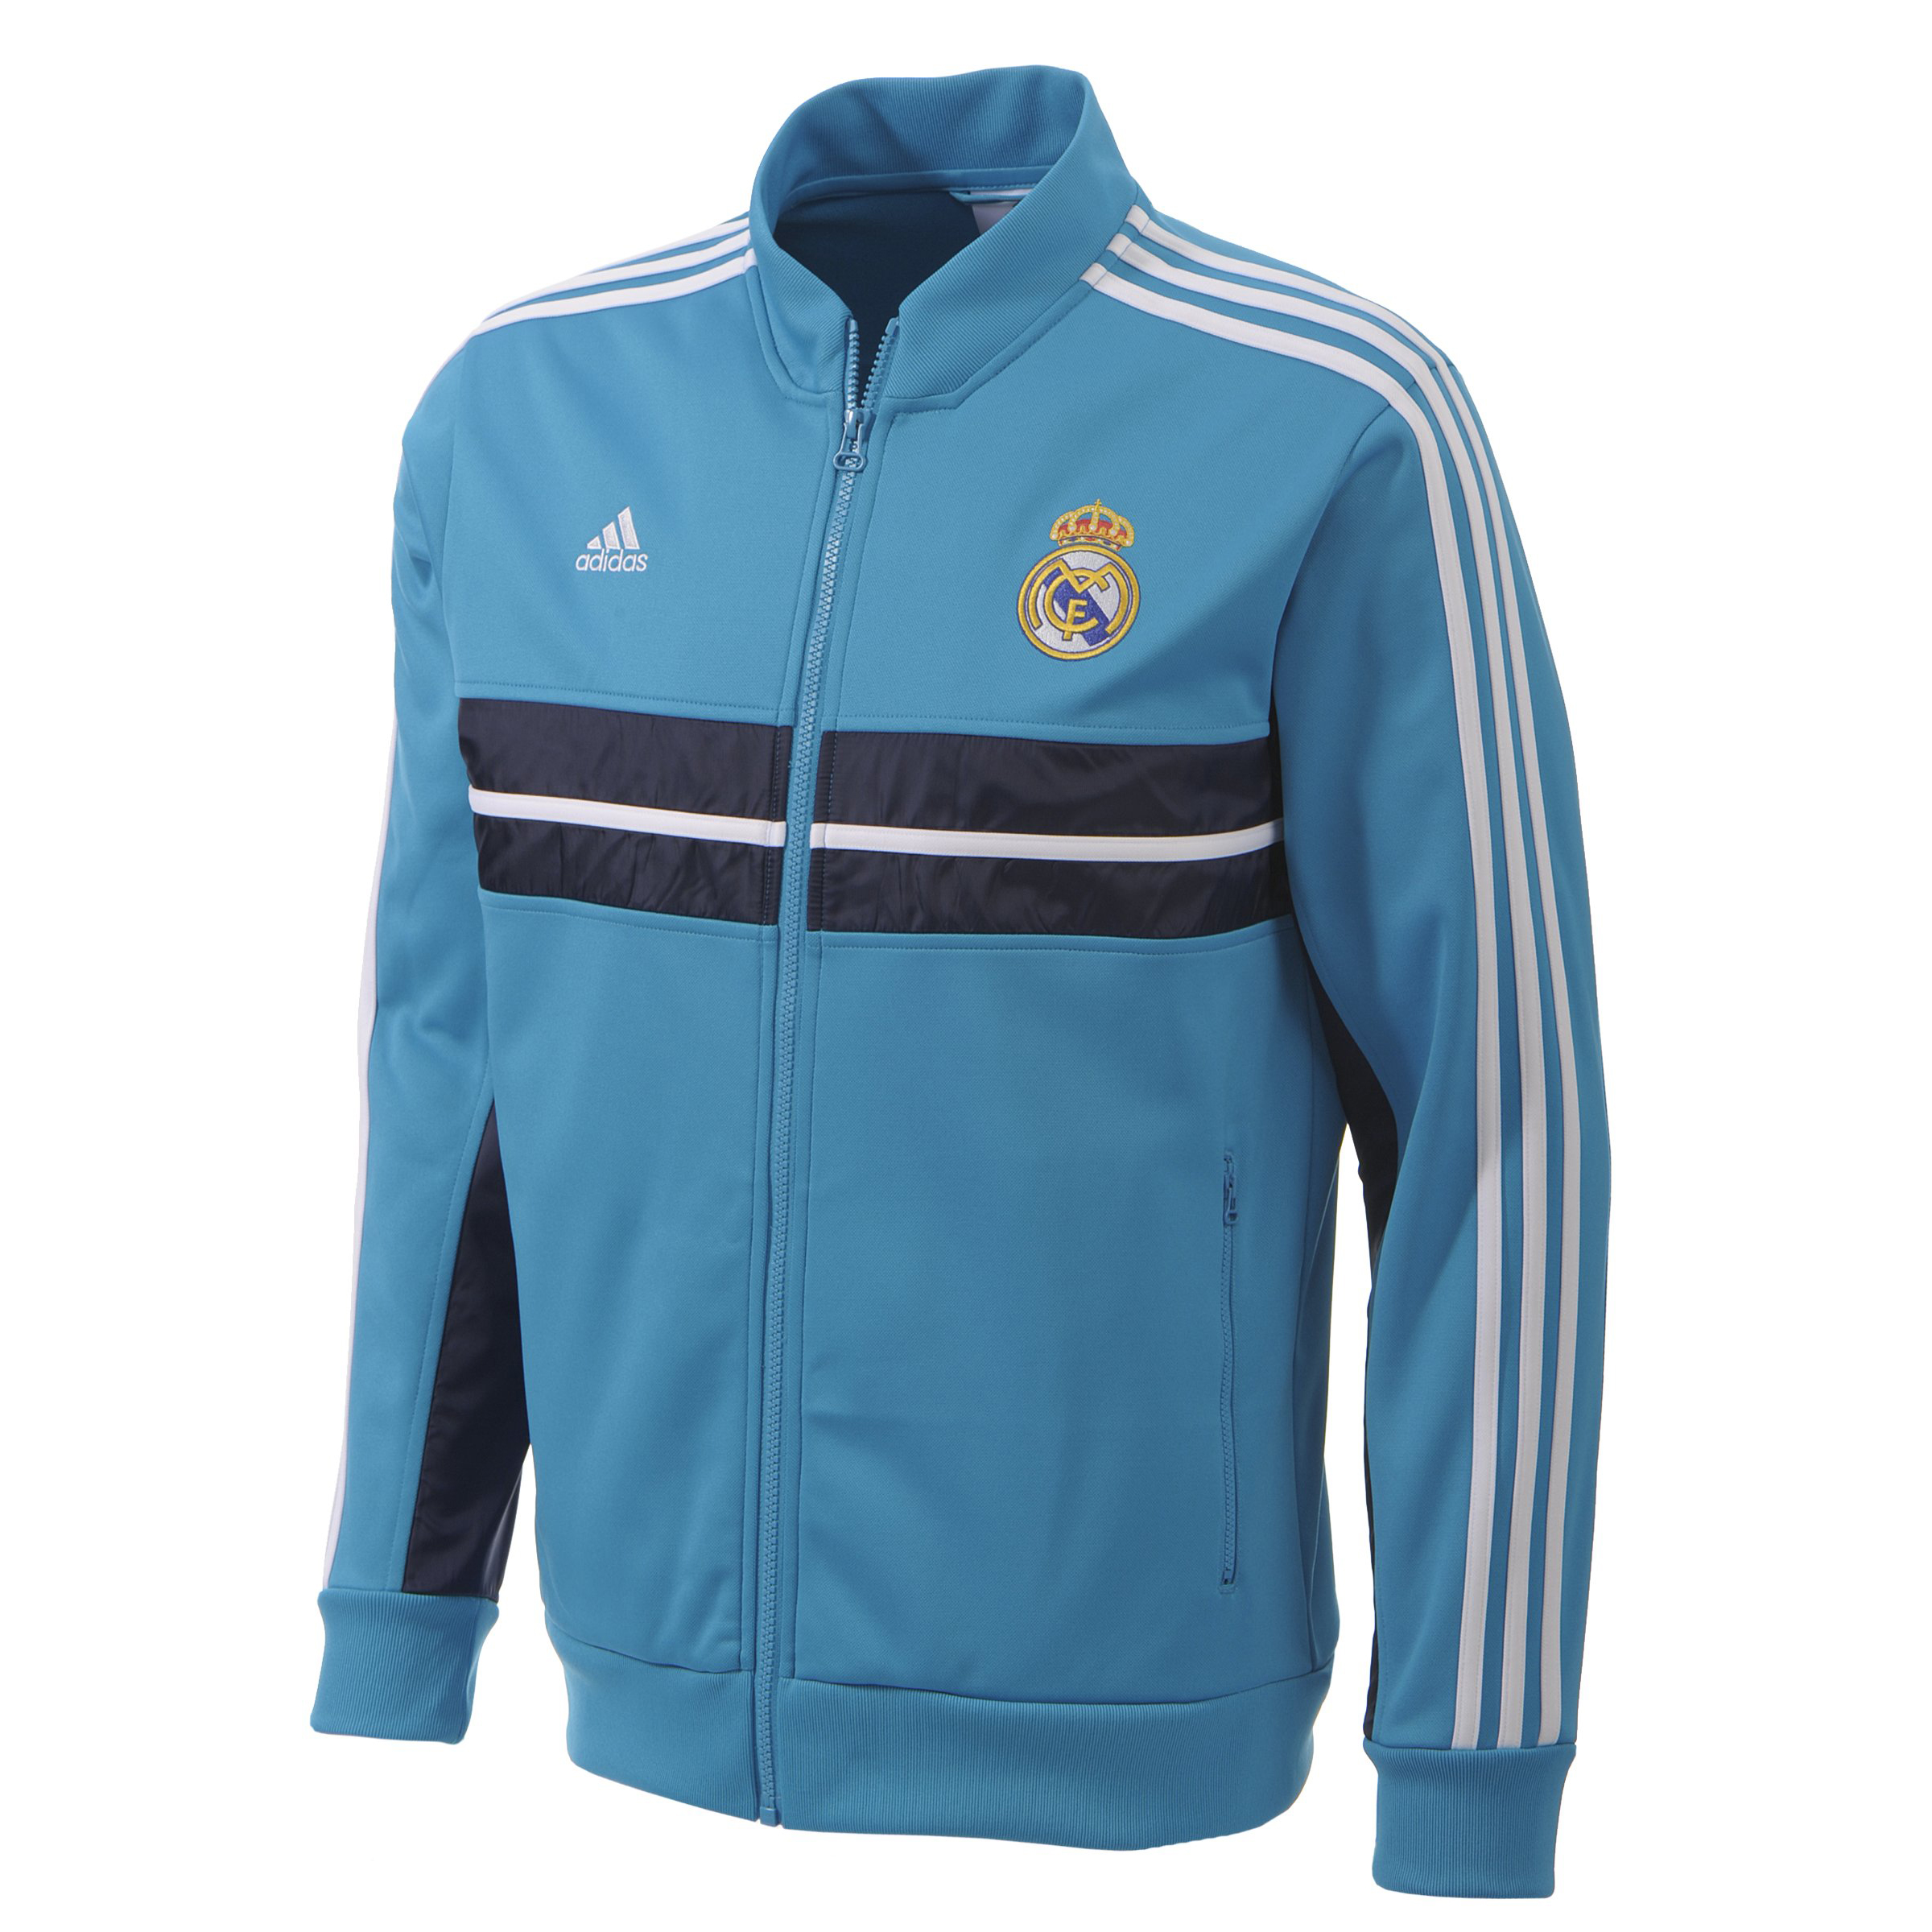 Real Madrid Anthem Jacket - Turquoise